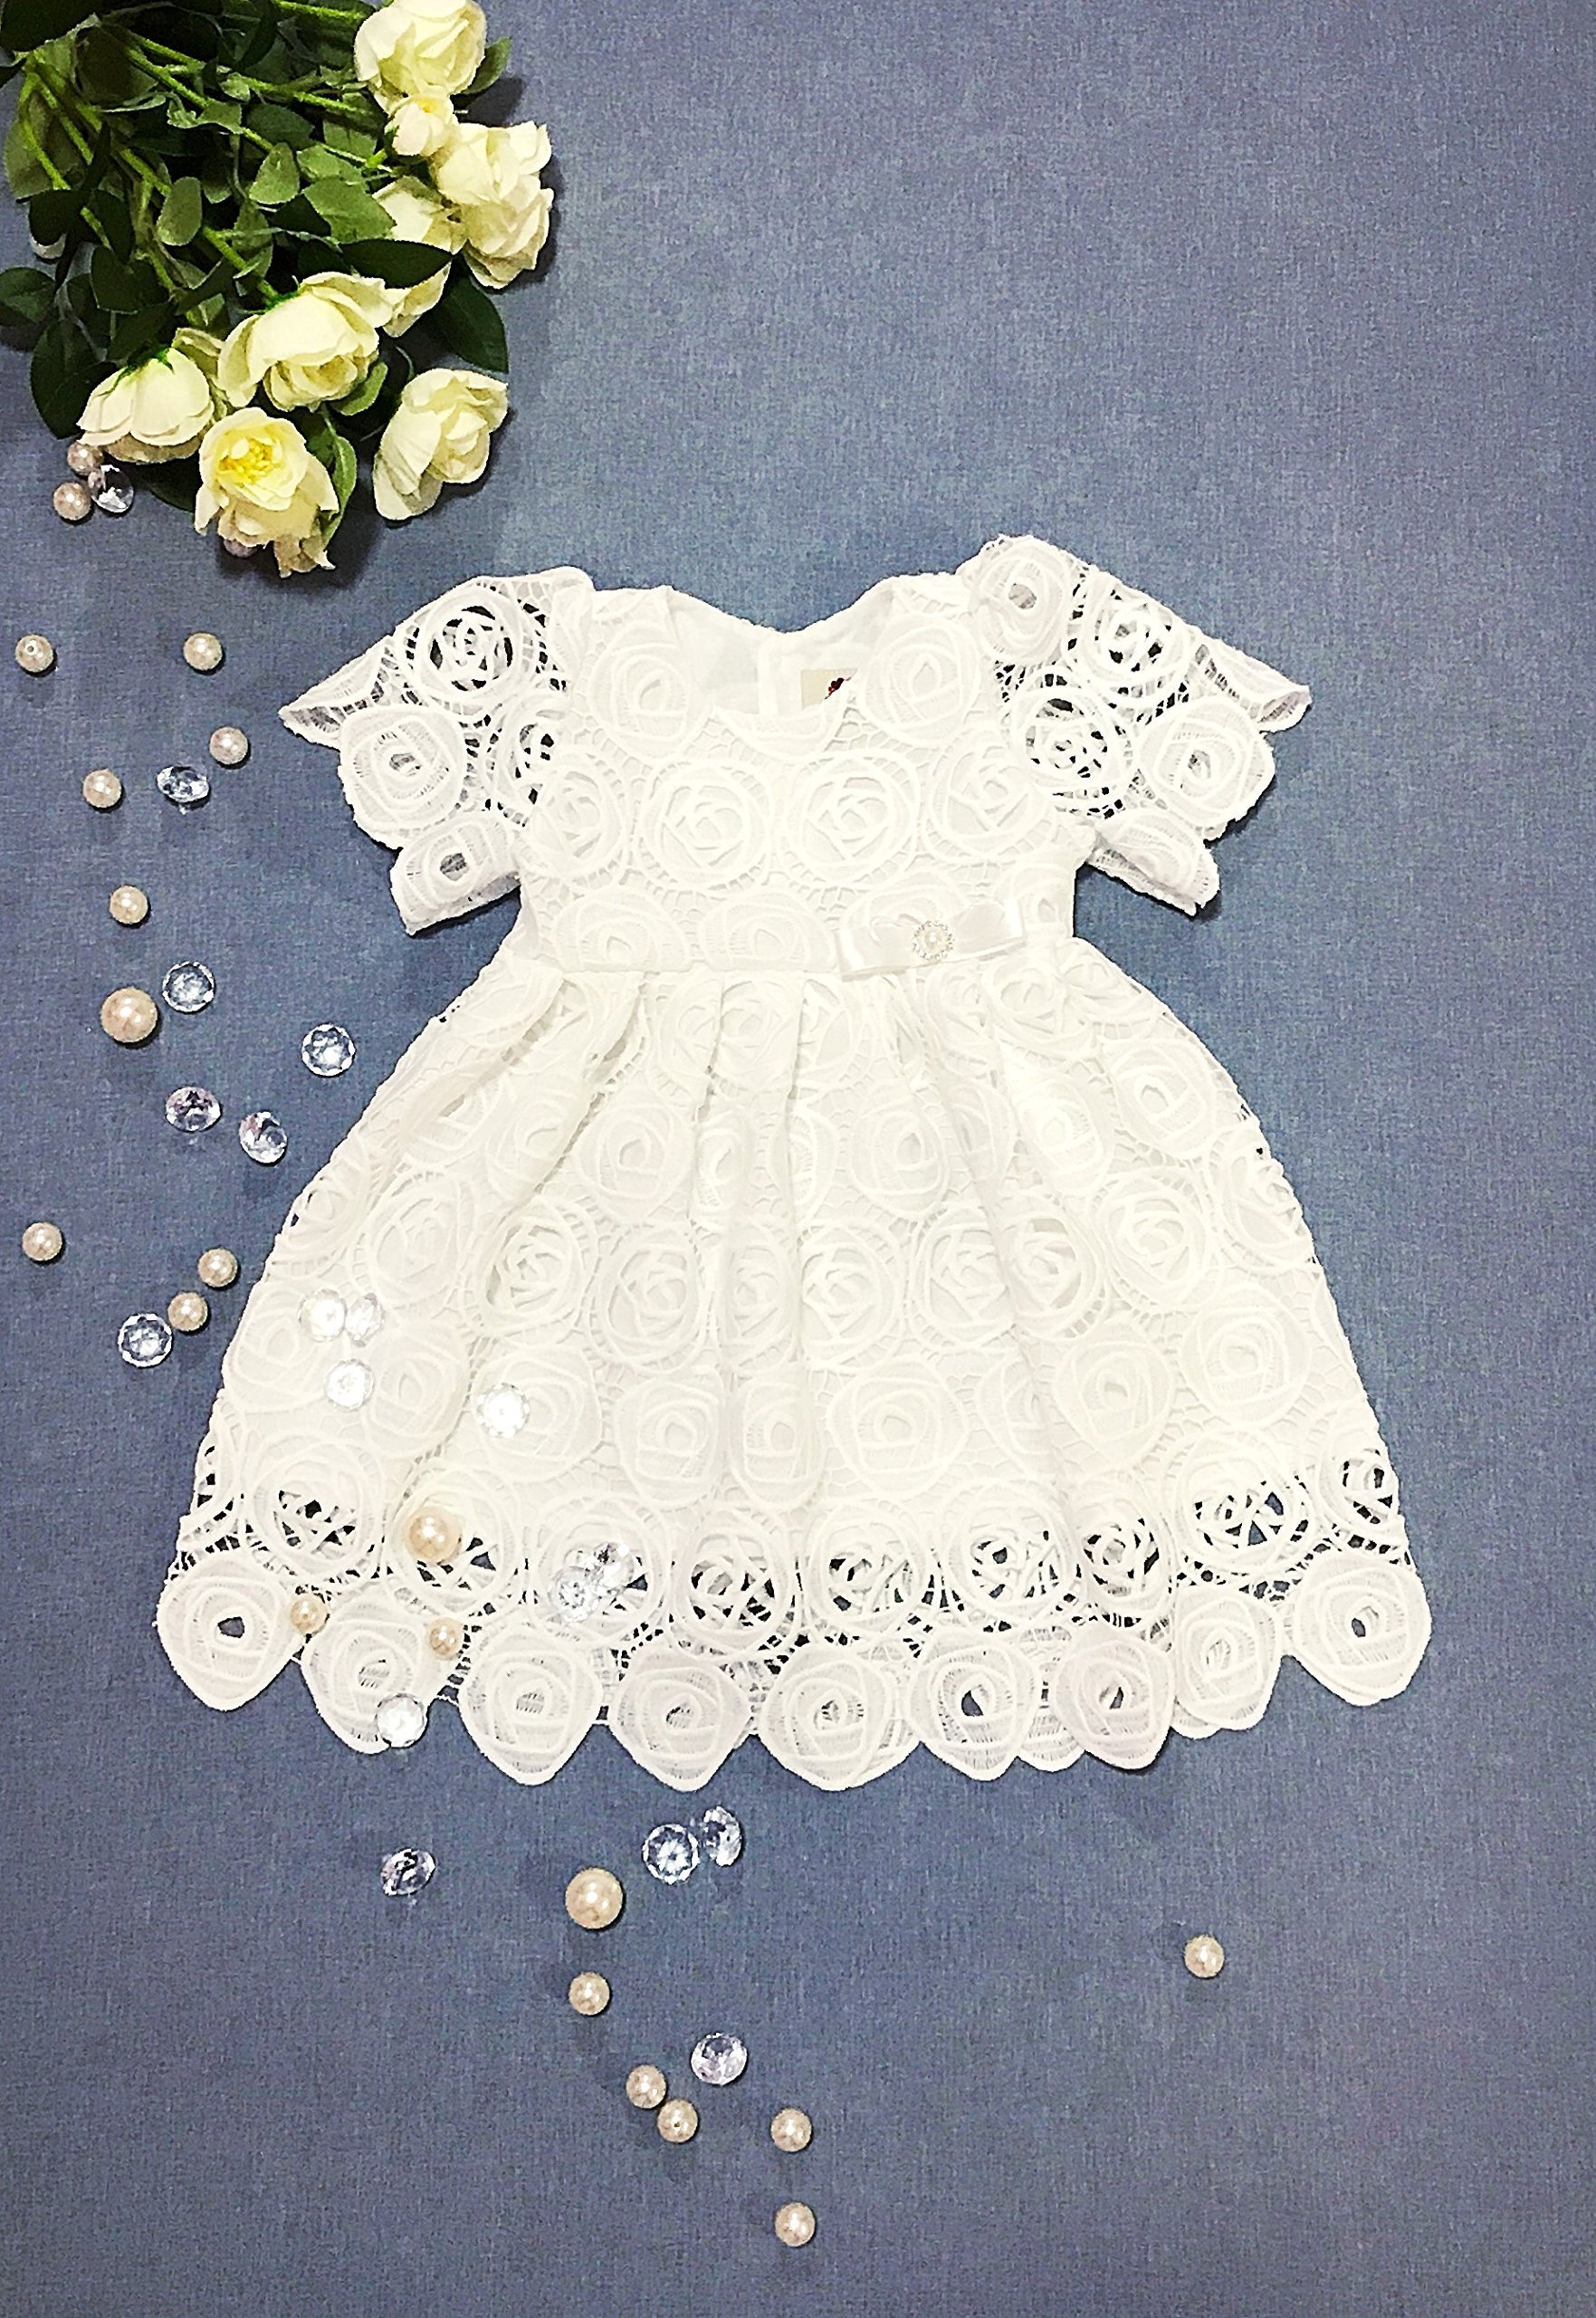 Off White Guipure Christening Gown by Cool bébés